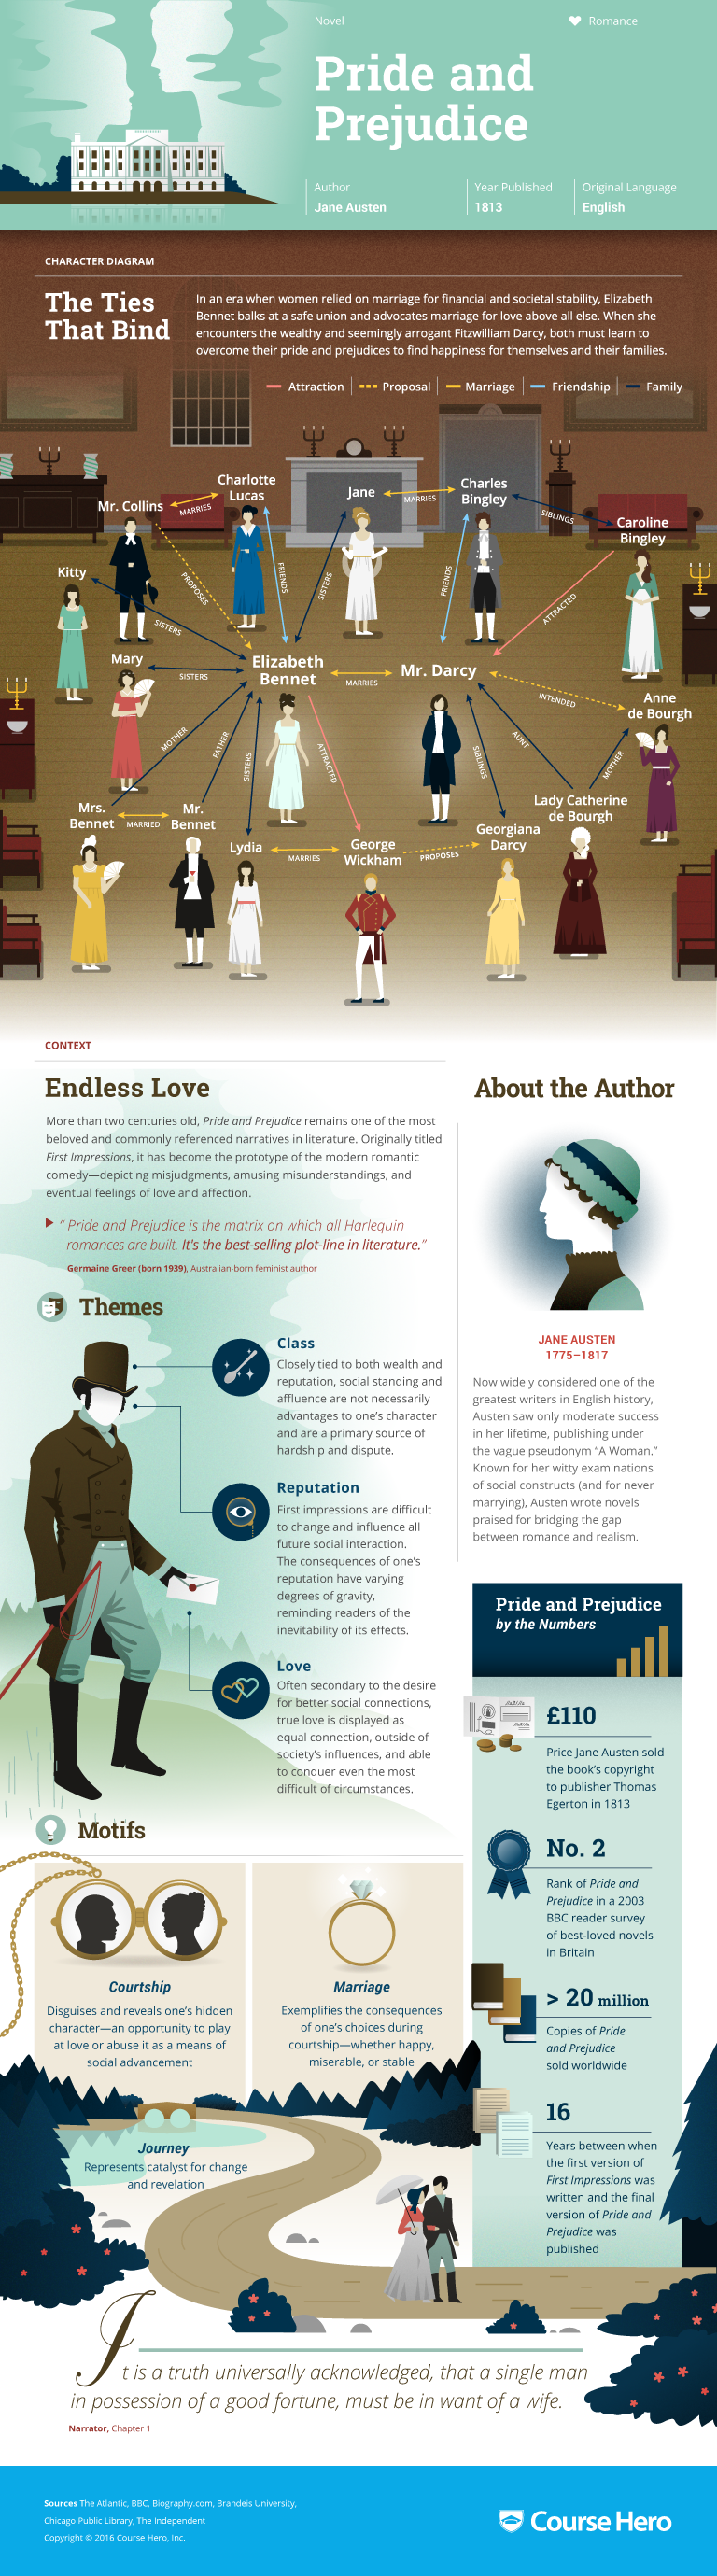 Pride and Prejudice Infographic | Brush up on all the characters and themes before #PrideandPrejudiceandZombies comes out this weekend!